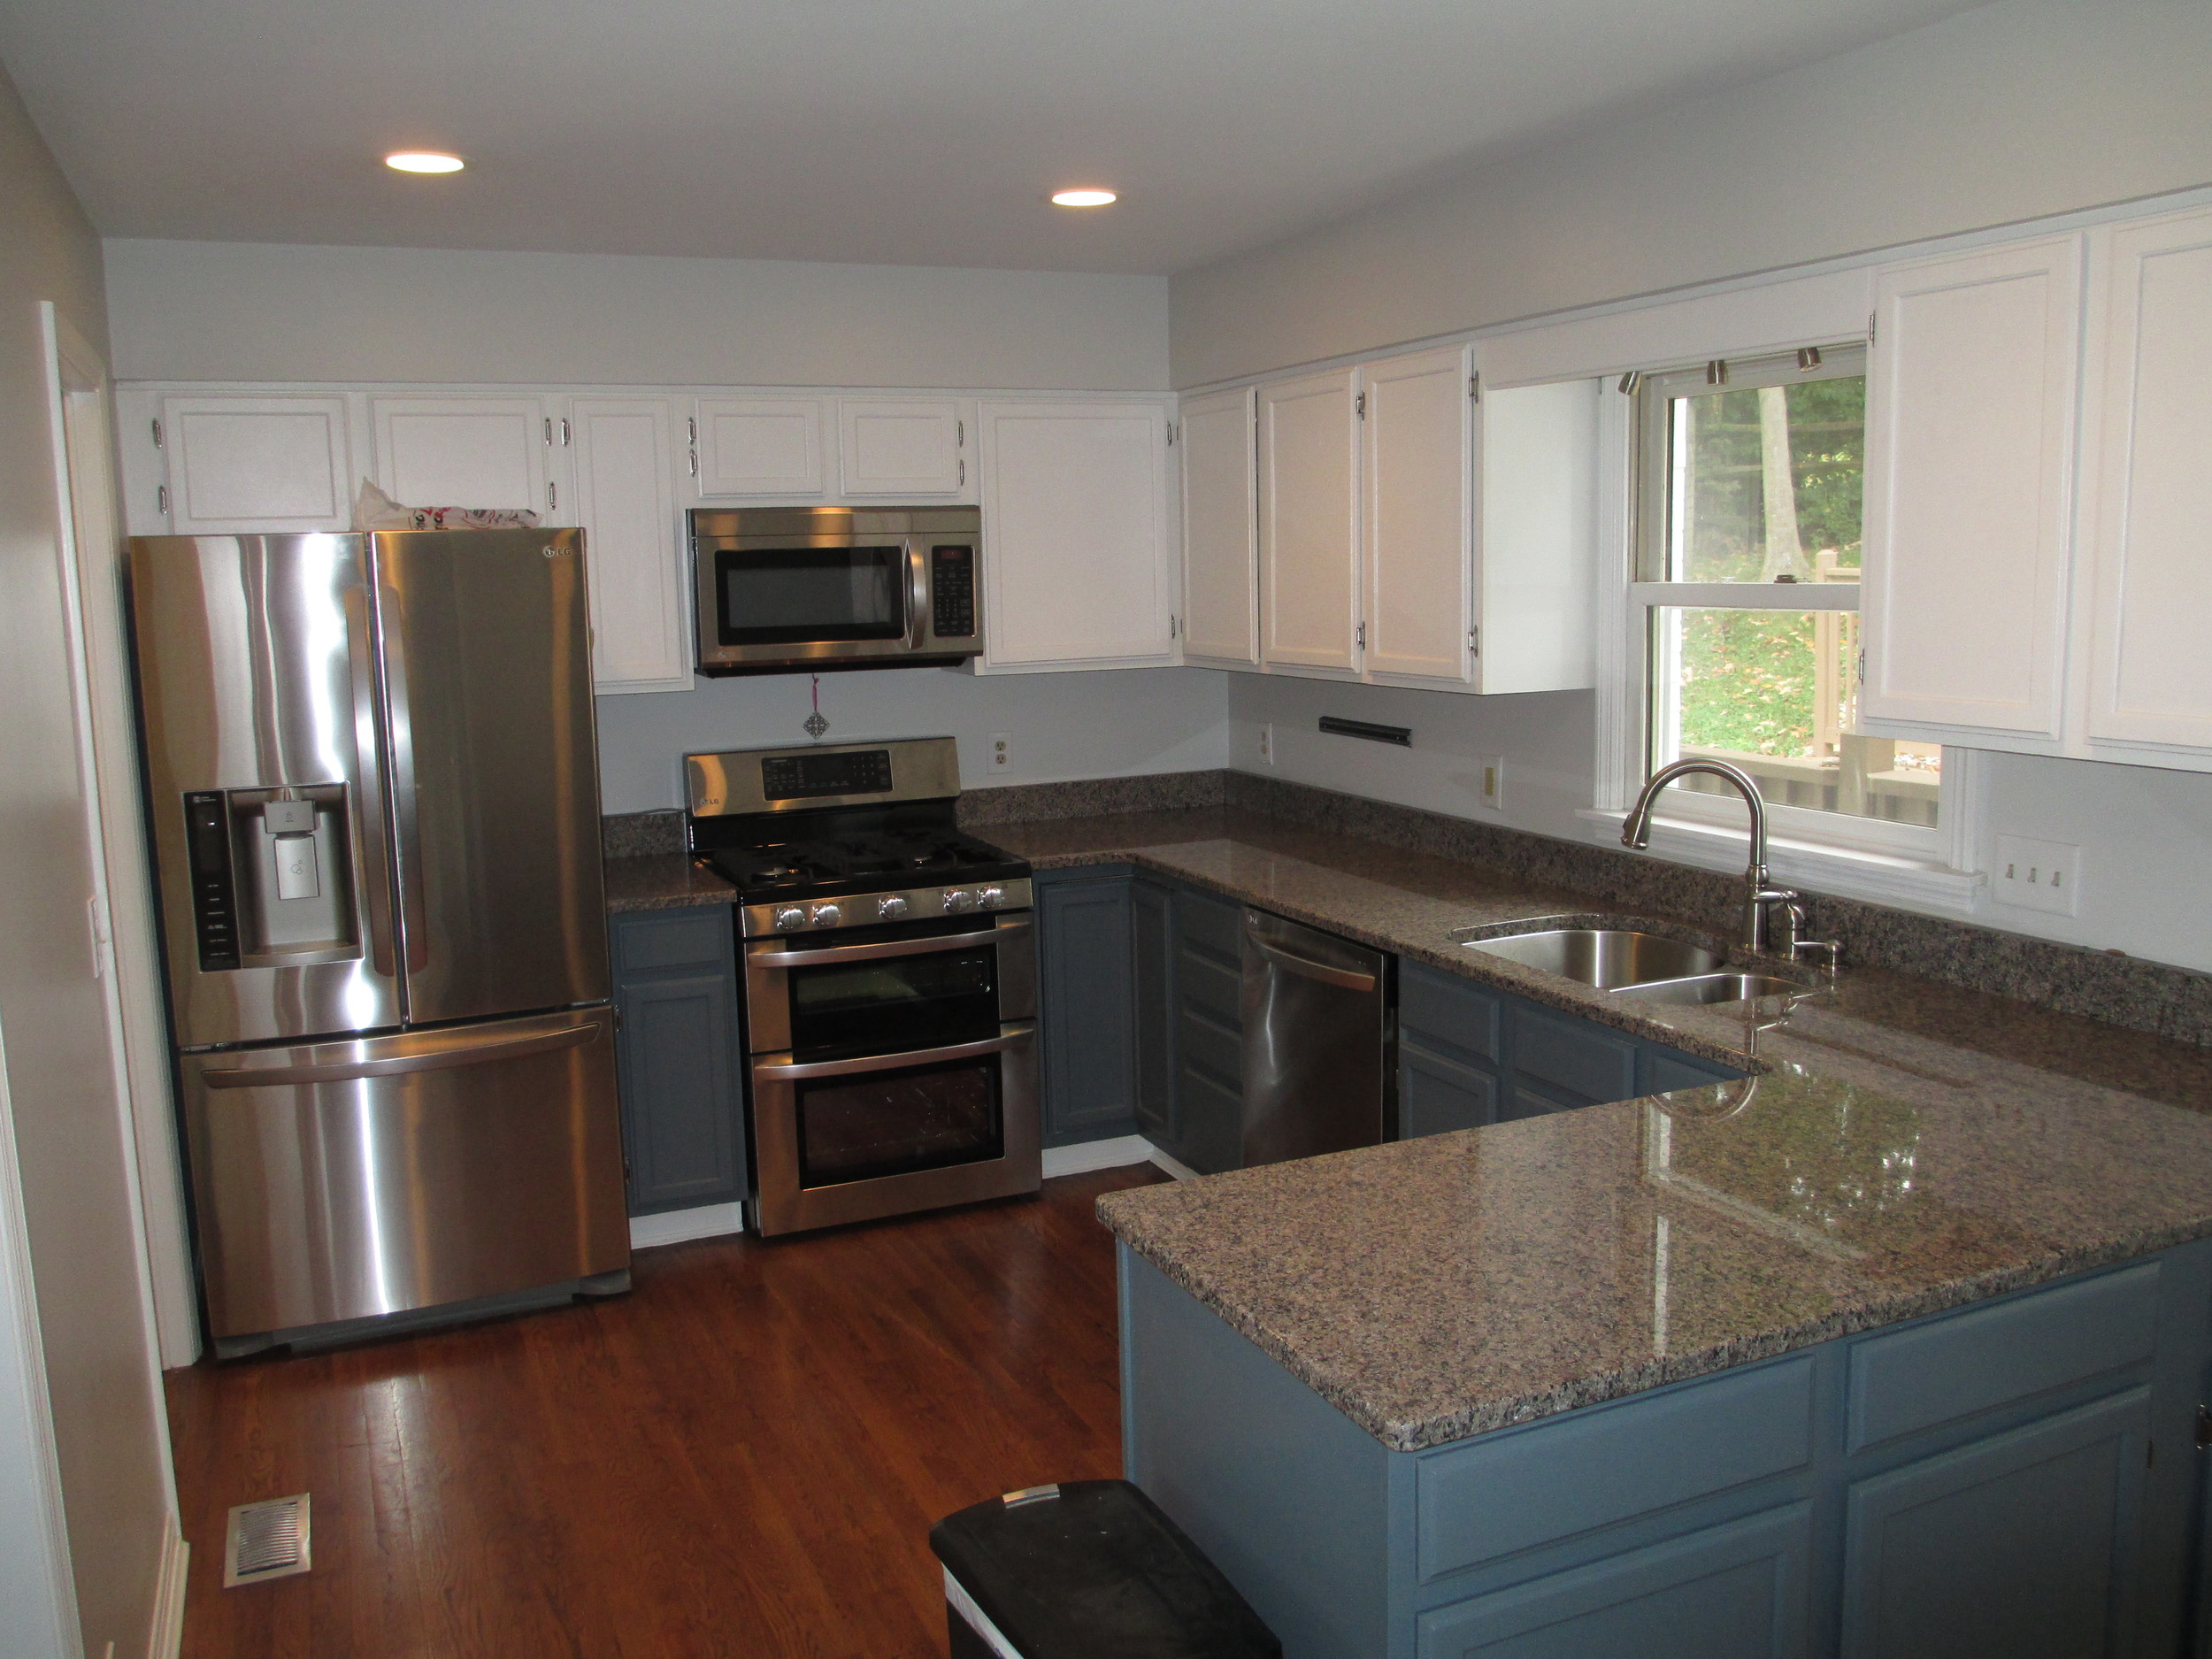 Cincinnati Kitchen counter installation